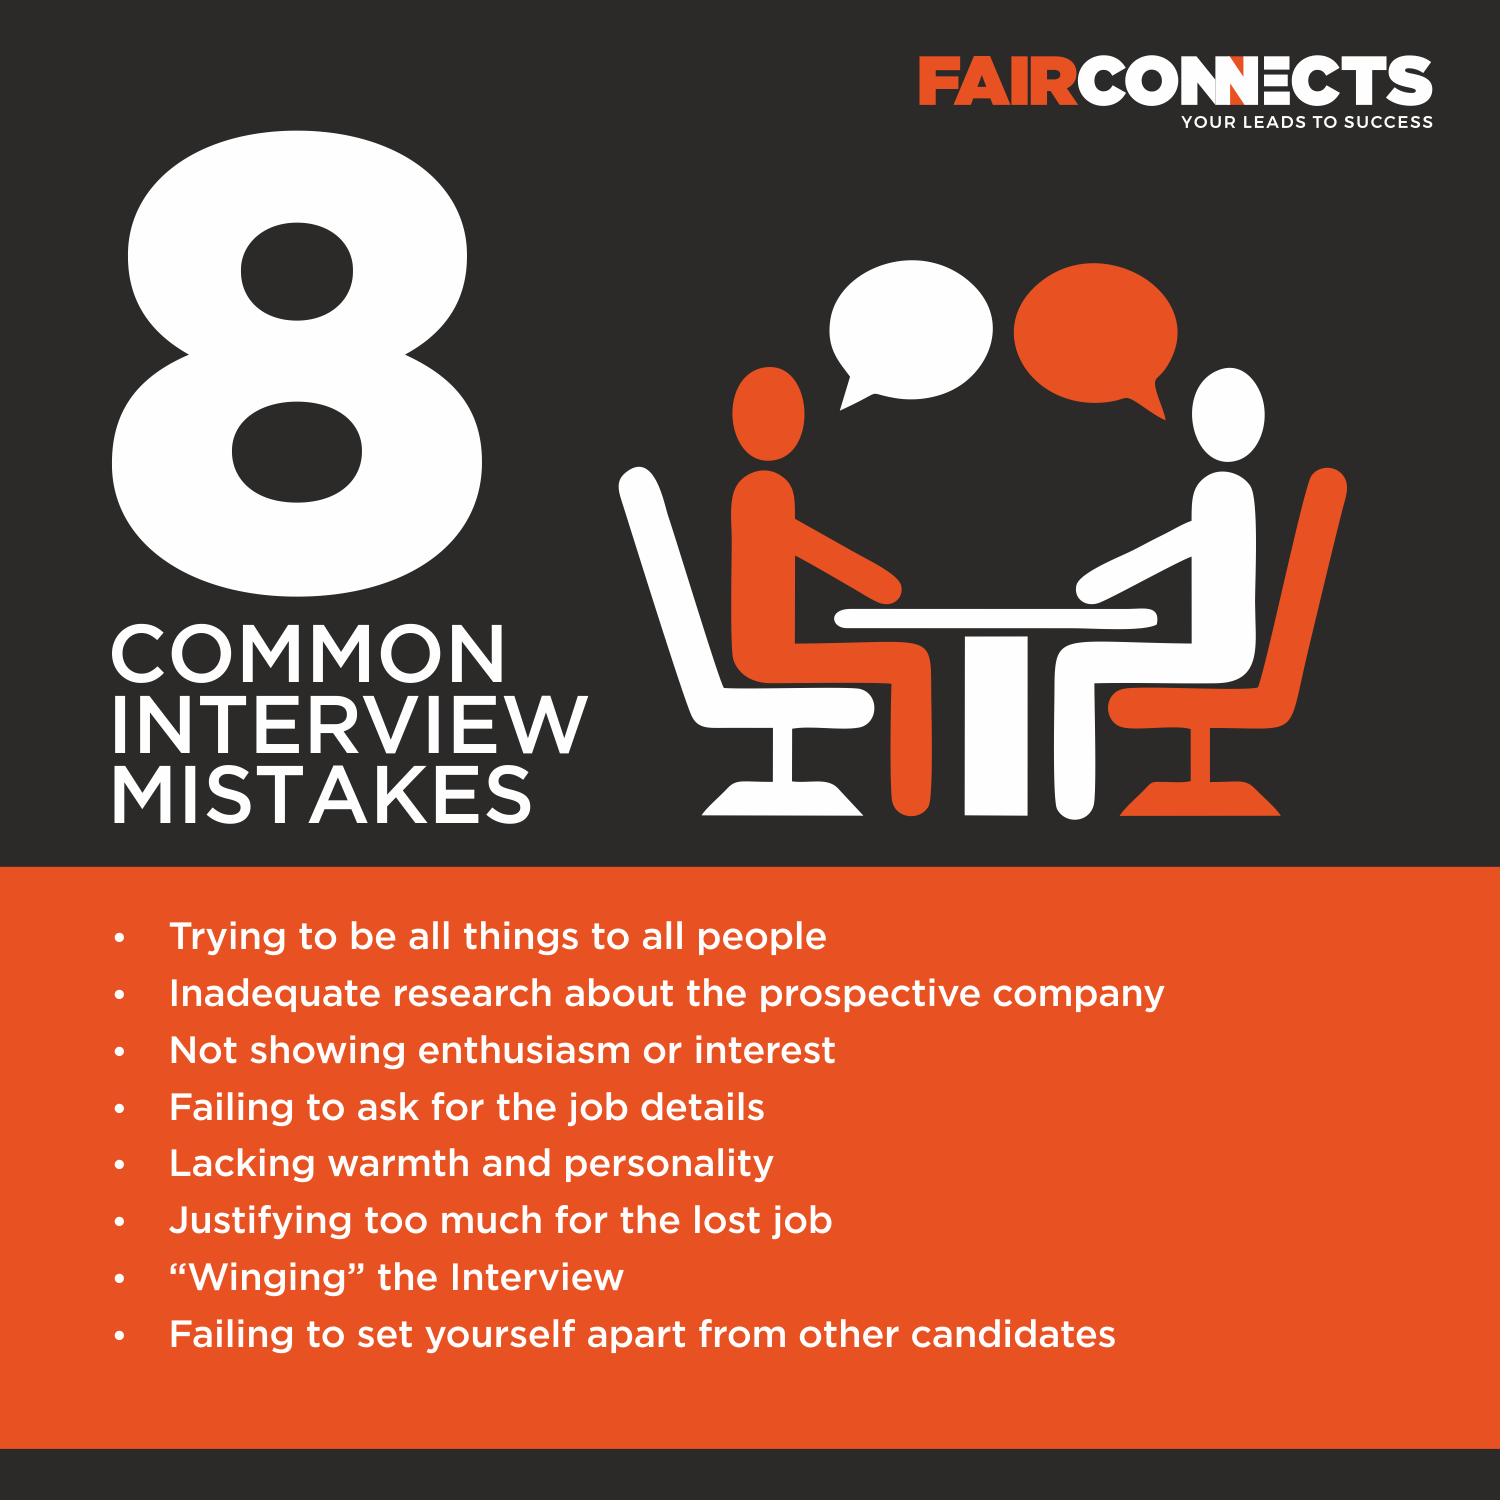 It is very easy to make these common interview mistakes